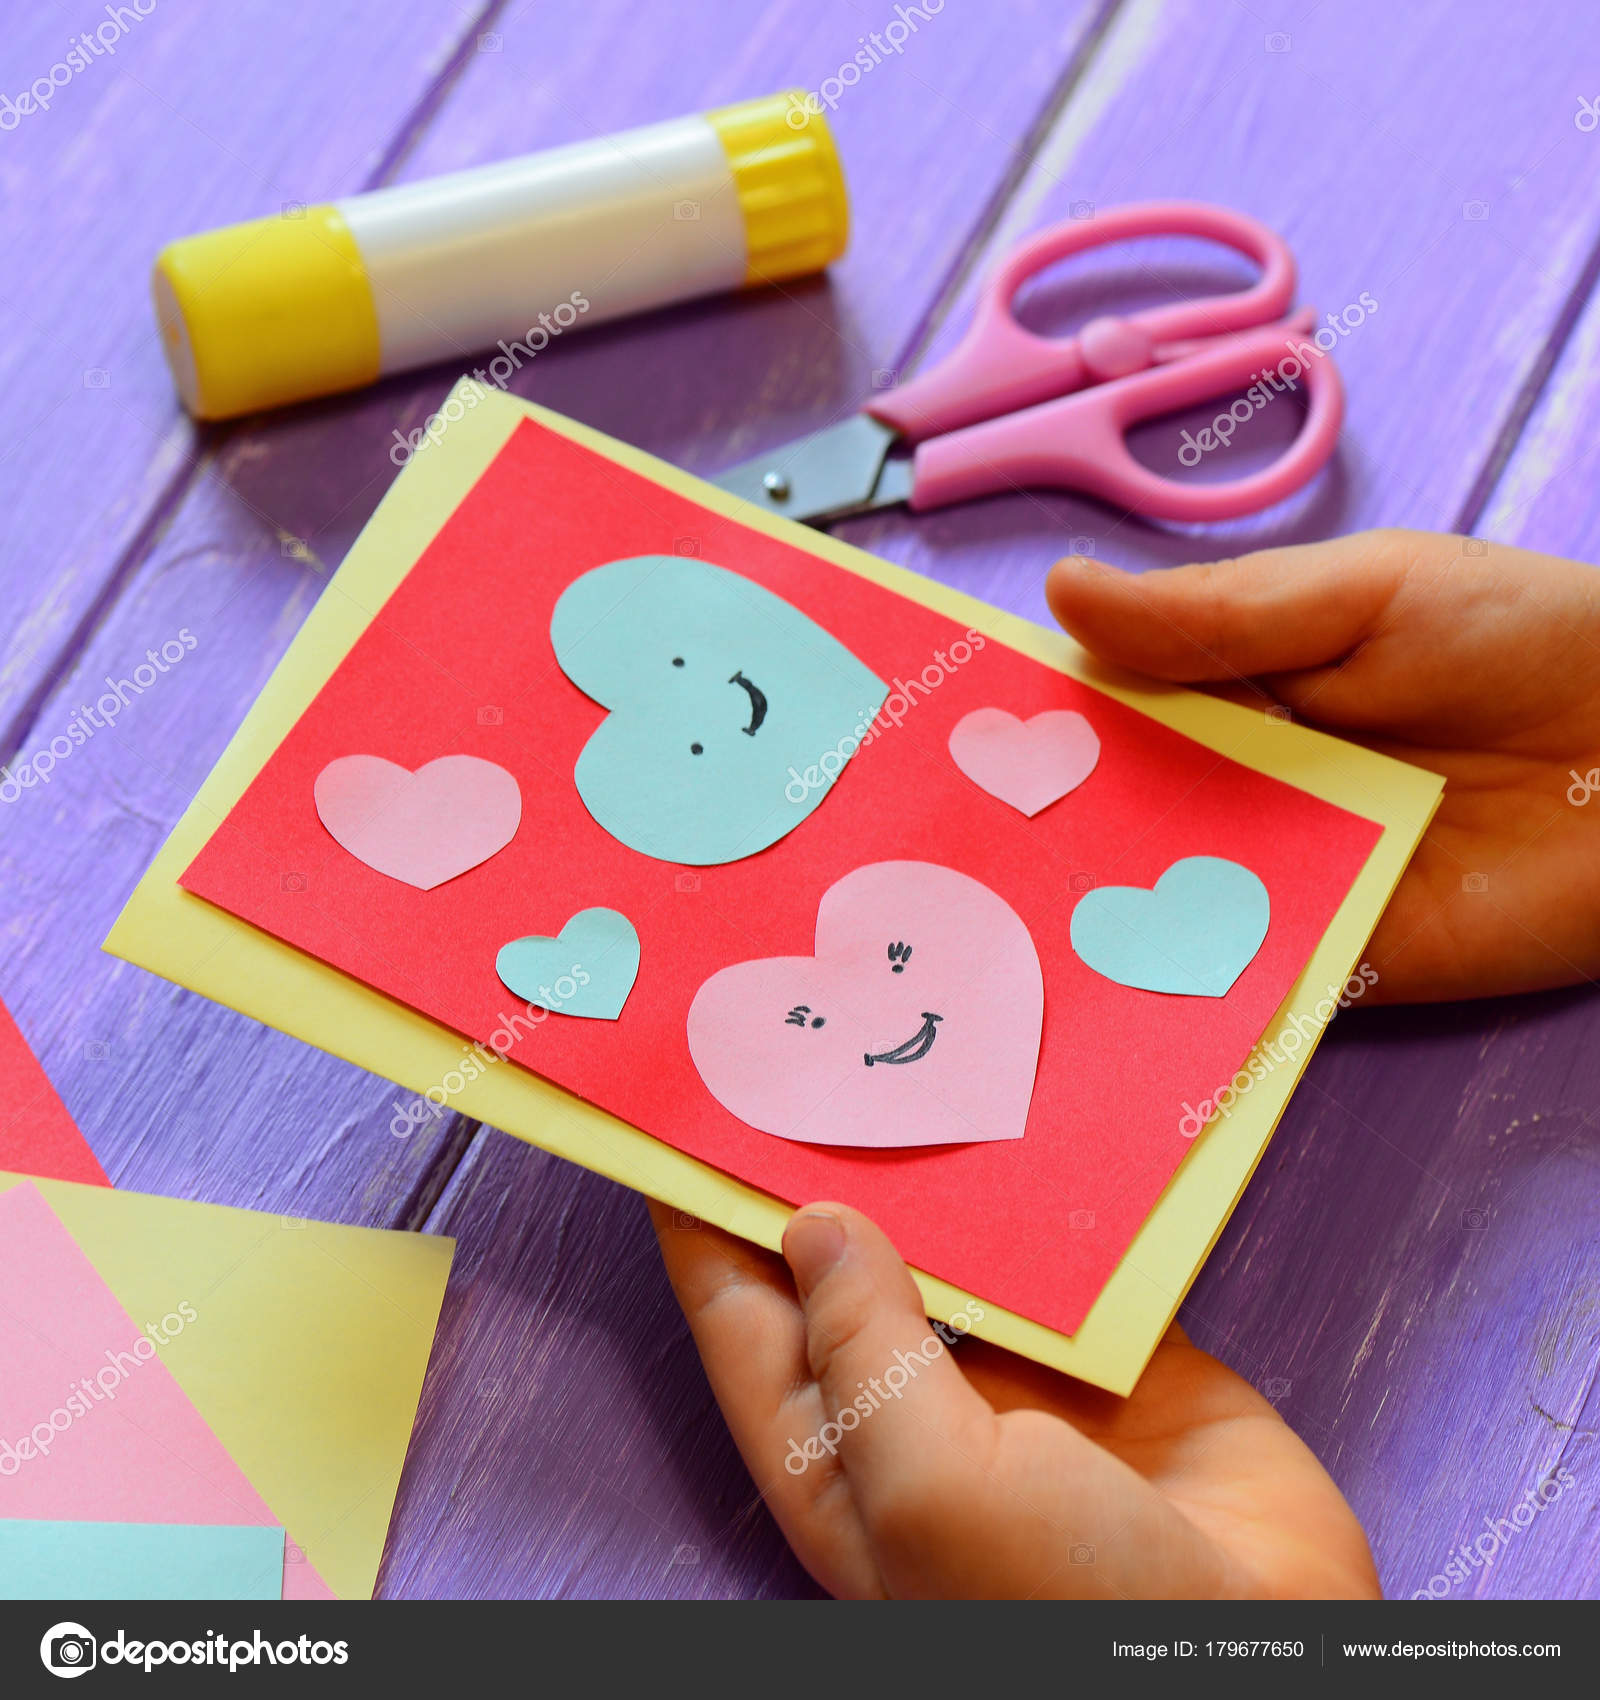 Card Folding Techniques For Card Making Child Holding